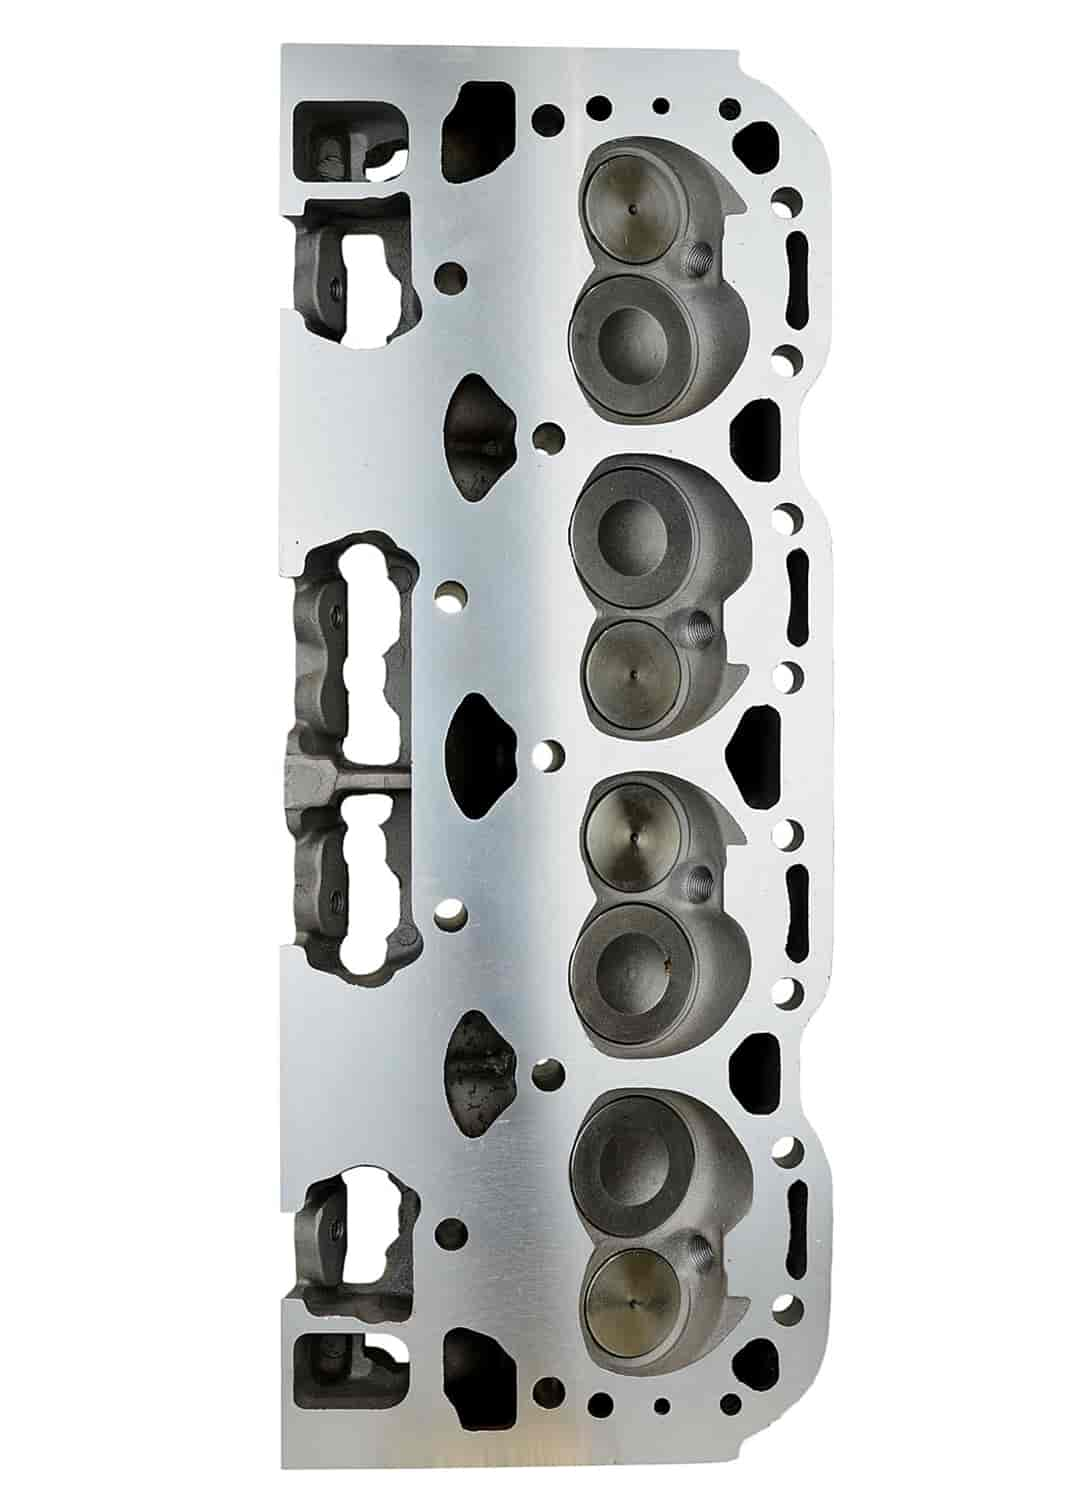 ATK Engines Remanufactured Cylinder Head for 1996 Chevy Corvette with LT4  350ci/5 7L V8